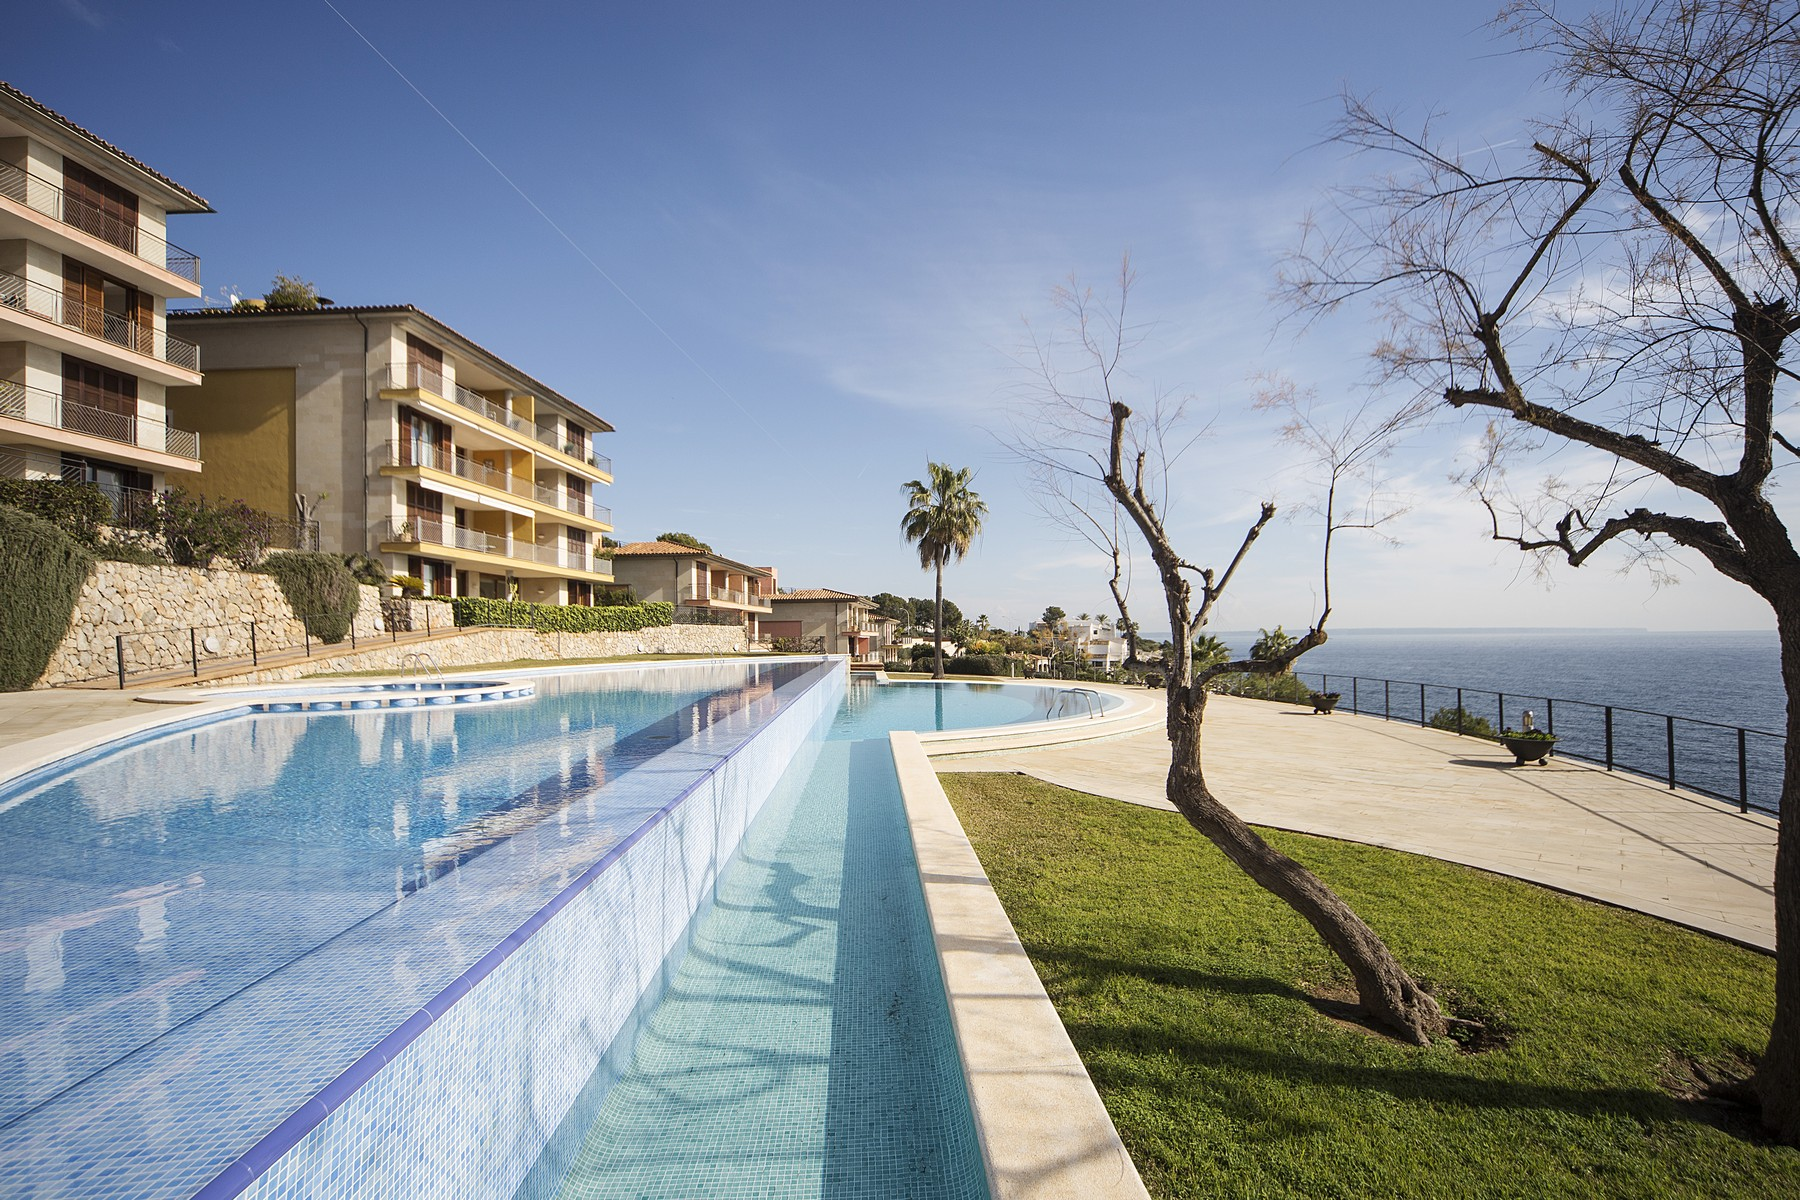 Appartement pour l Vente à Apartment with sea access in Sol de Mallorca Sol De Mallorca, Majorque, 07181 Espagne